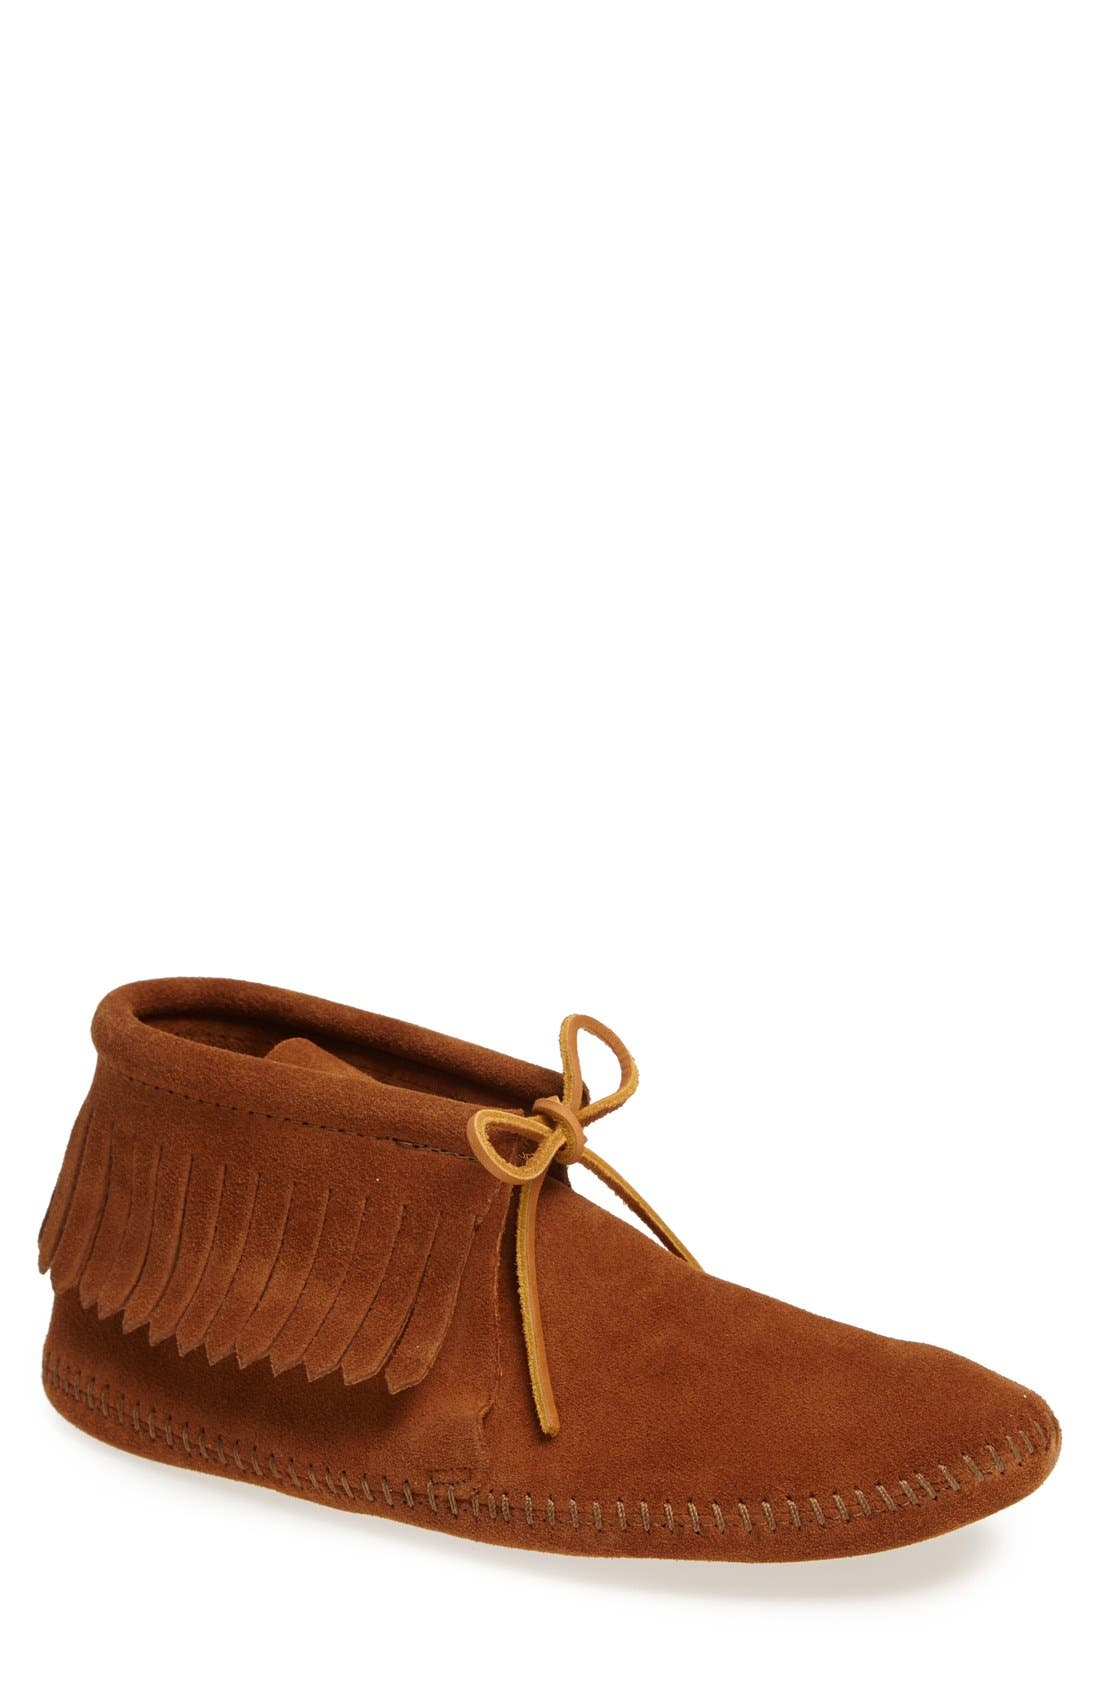 Fringe Boot,                             Main thumbnail 1, color,                             BROWN